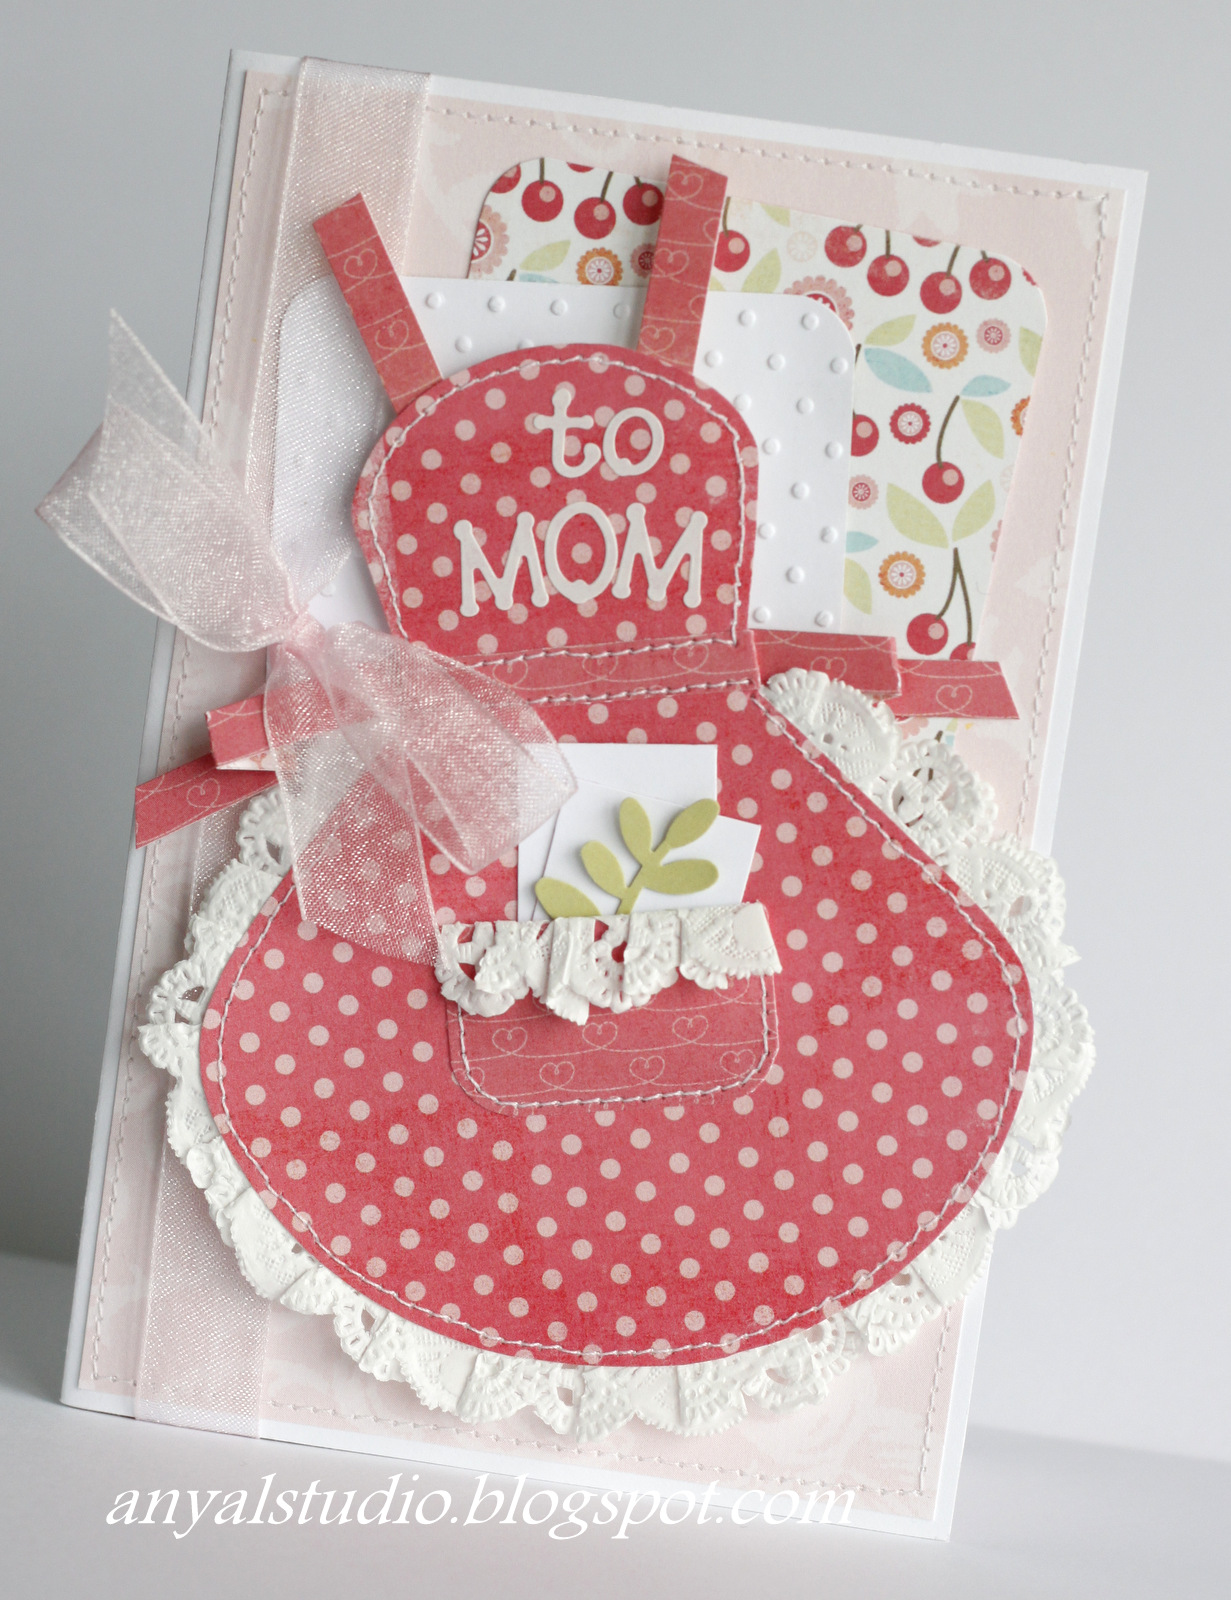 I Covered Inside Of The Card Adding A Little Pocket For Thank You Gift Moms Deserve That